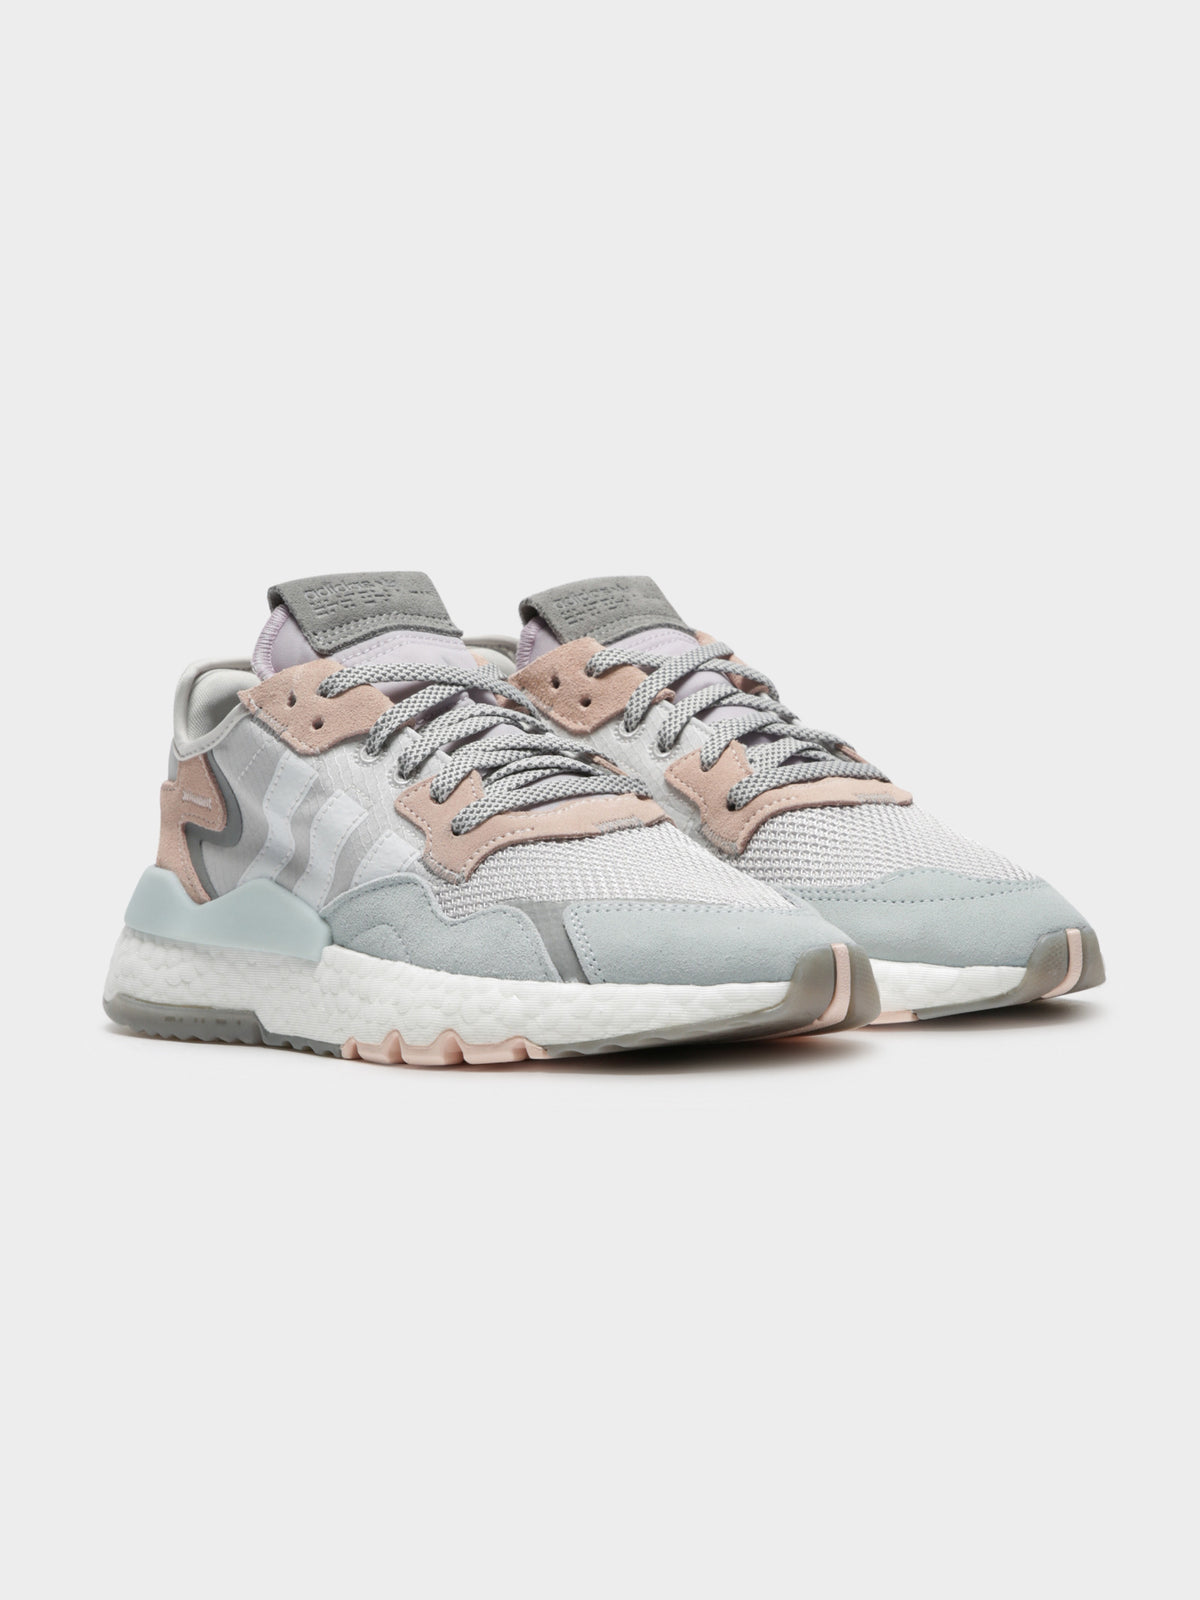 Womens Nite Jogger in Grey Pink & White